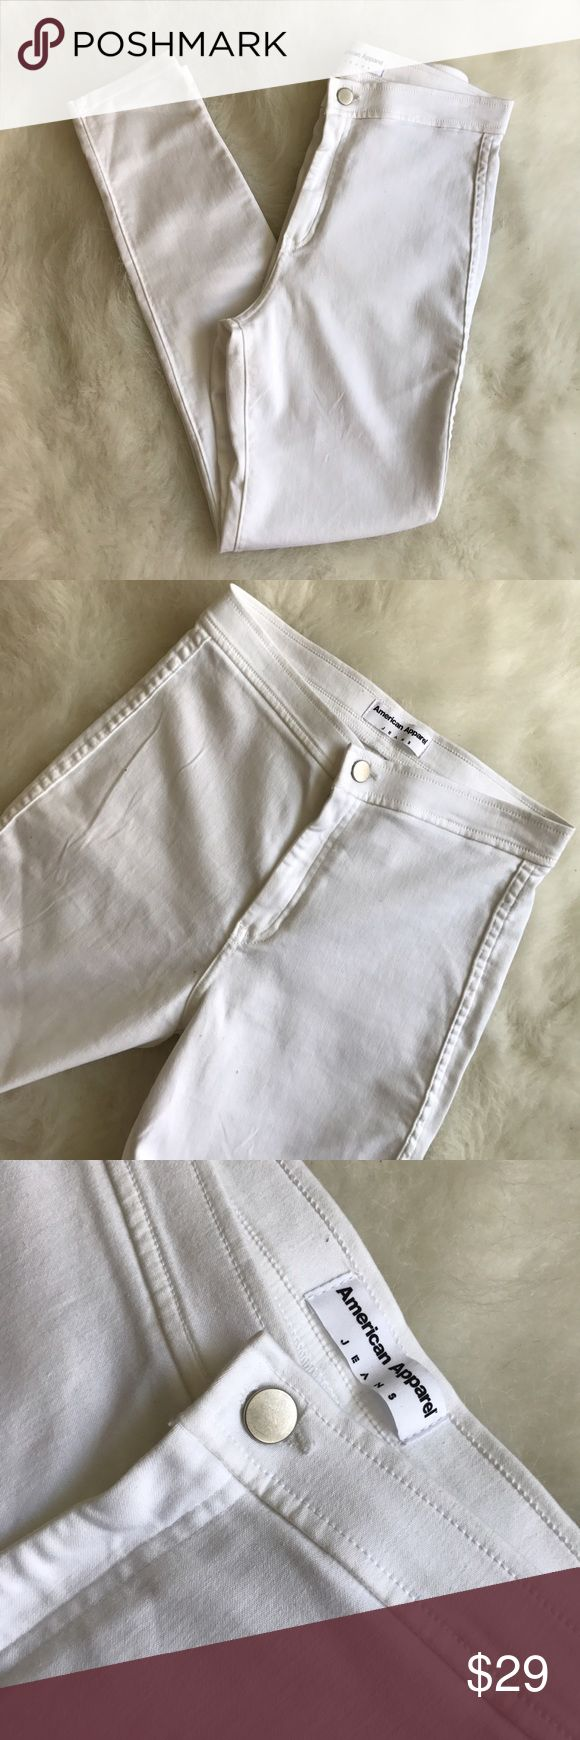 American Apparel High Waist White Skinny Jeans❤️ American Apparel High Waist White Skinny Jeans❤️ Condition: NWOT Size: L  Inseam: 29 Waist: 13 Trendy summer jeans 👖 high waist & perfect to pair with your fav heels or crops tops.Take these to Coachella! Jeans are NWOT I bought them & they fit me big I'm more of a medium pants size I wear a size 3-5 so this would fit best 7-9. No stains & no tears. Jeans are very stretchy and back pockets are real! Grab this while you can 😄  In Bin: PE…